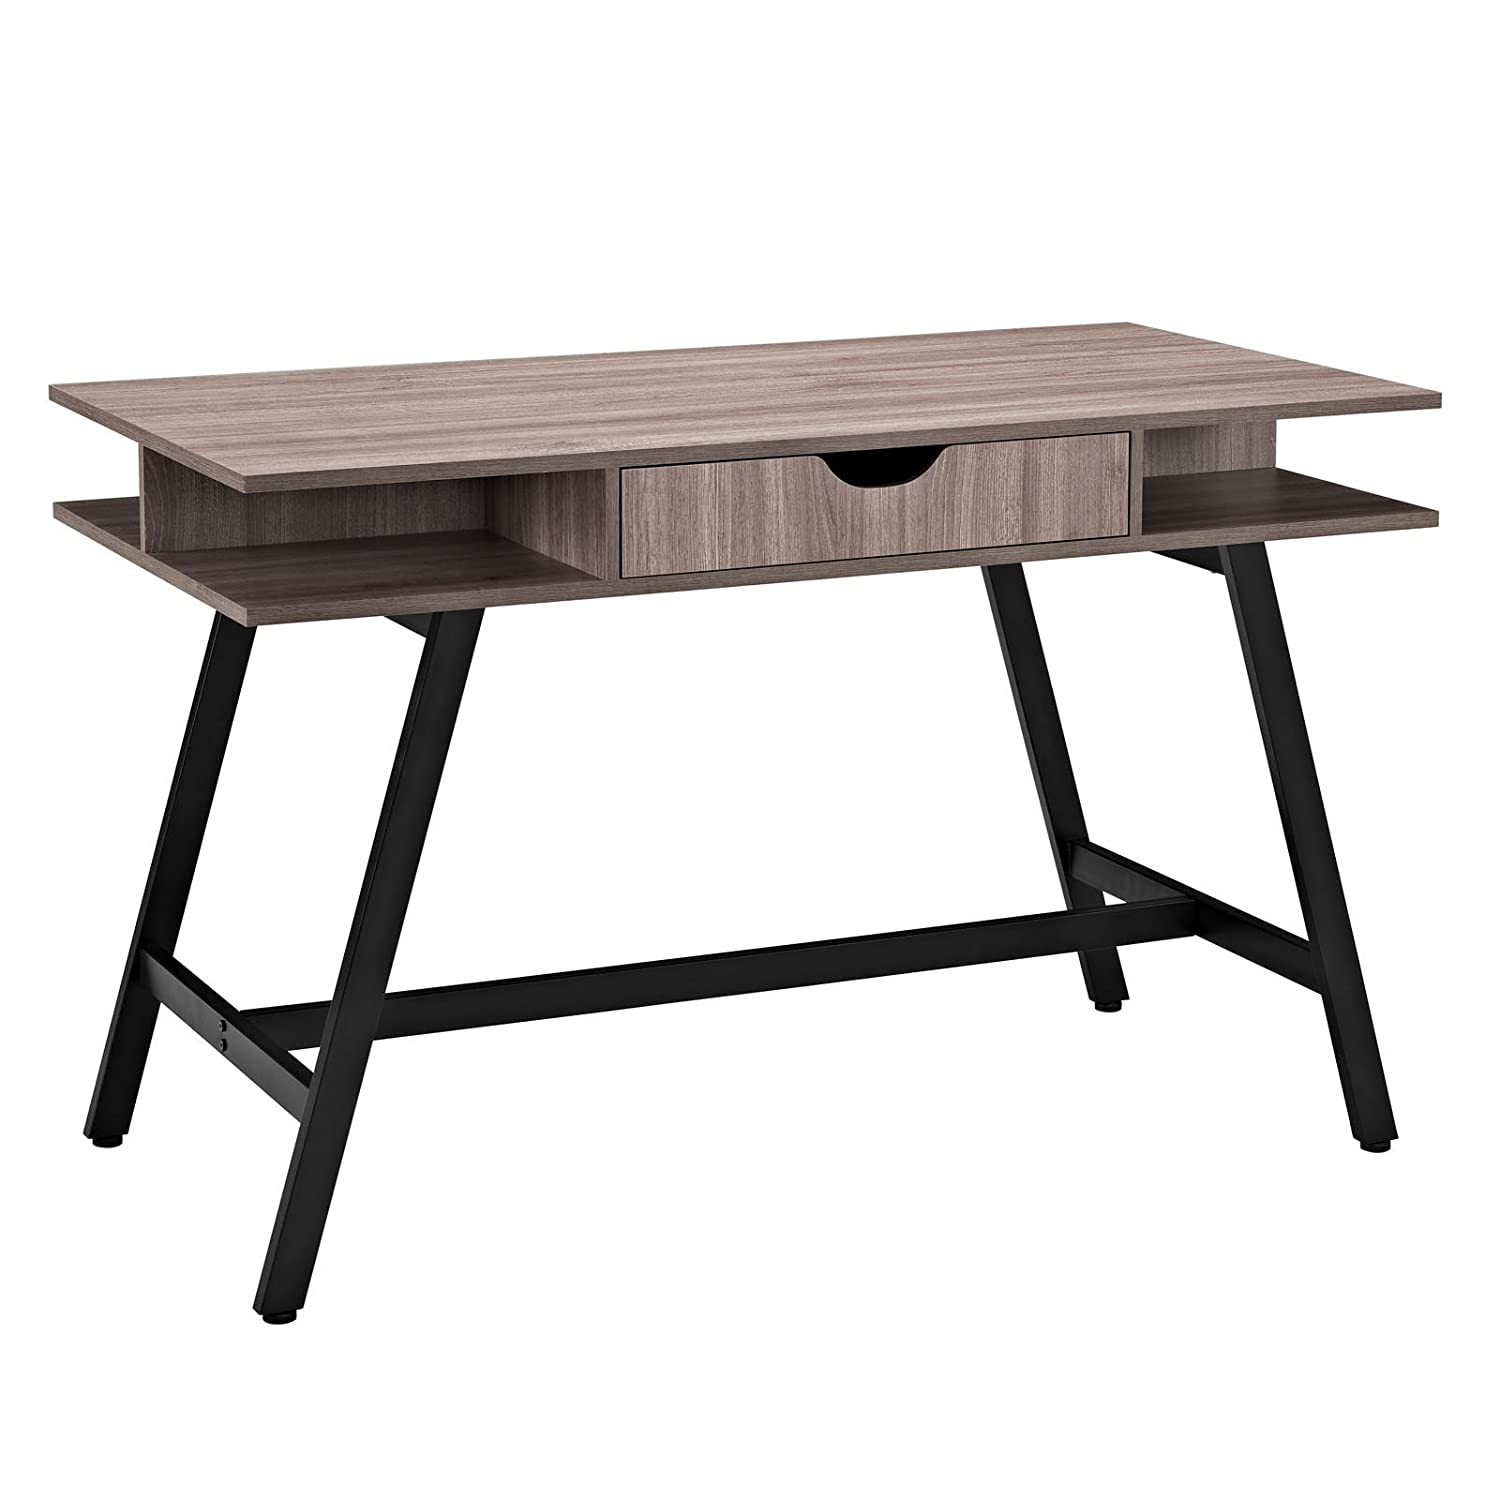 Amazoncom Modway Turnabout Desk Birch Kitchen Dining - Contemporary writing desk furniture